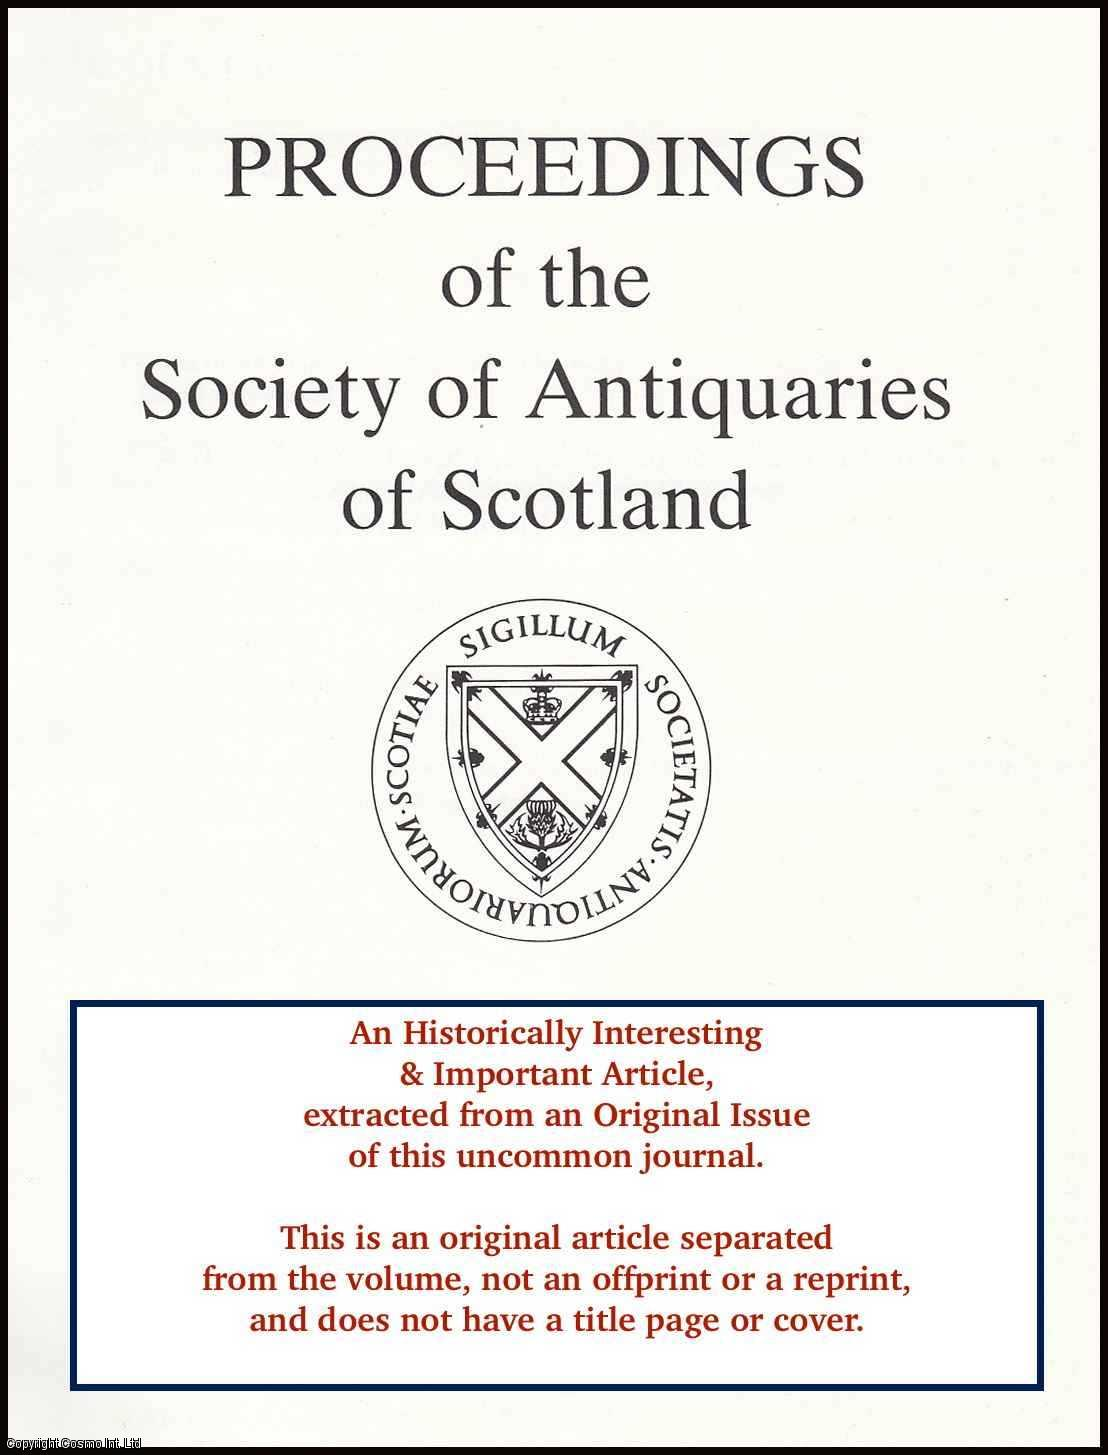 BENNETT, HELEN - Three Scottish Embroideries. An original article from the Proceedings of the Society of Antiquaries of Scotland, 1976.